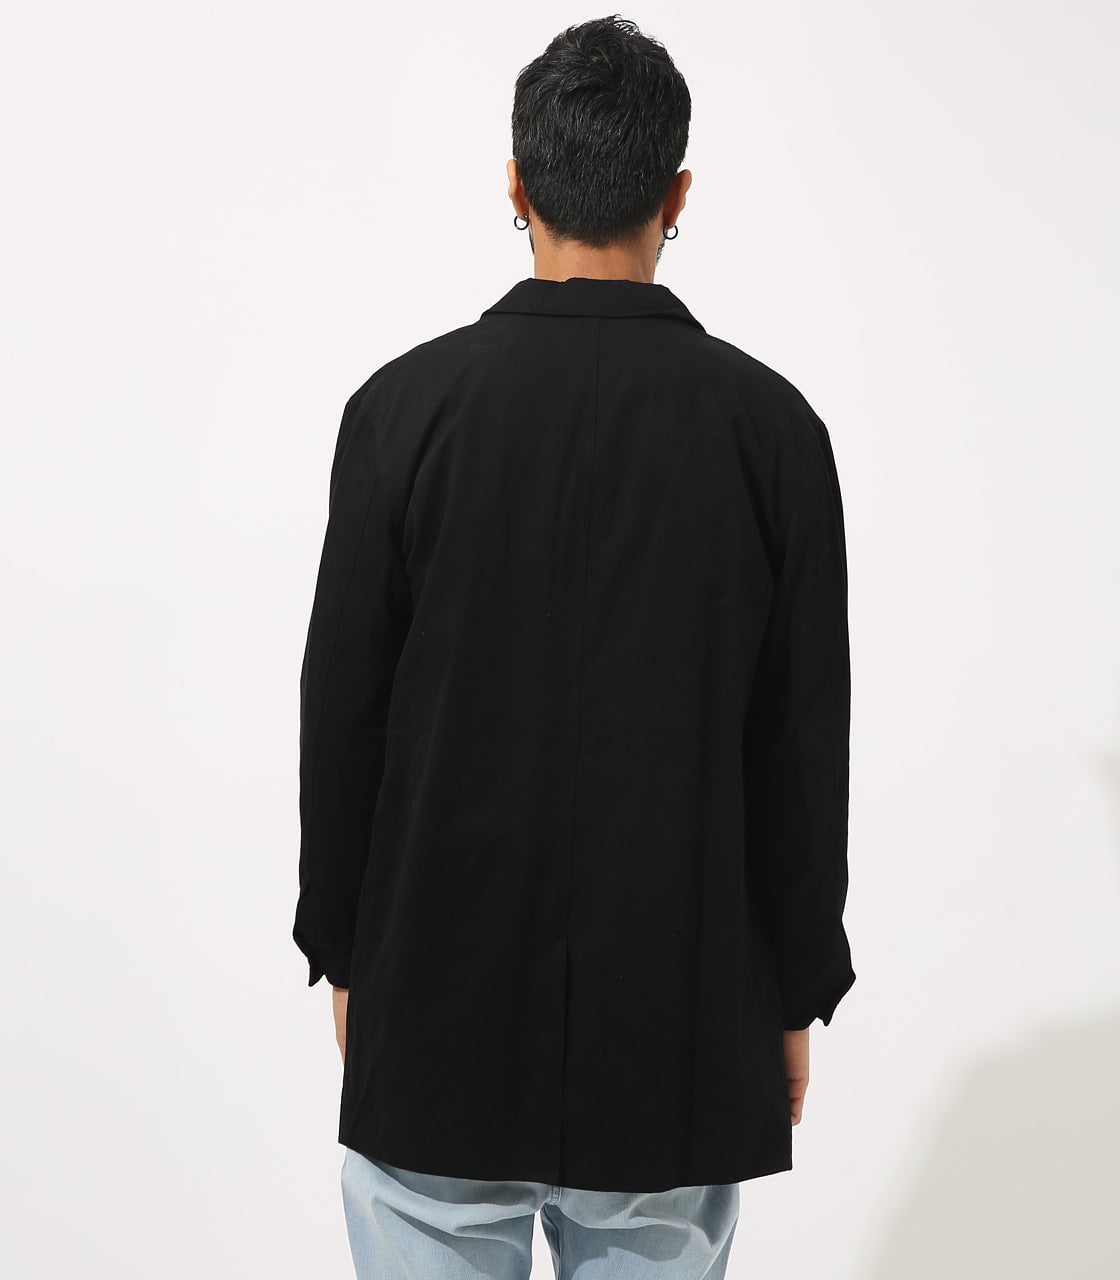 【AZUL BY MOUSSY】STANDARD SHOPCOAT 詳細画像 BLK 7